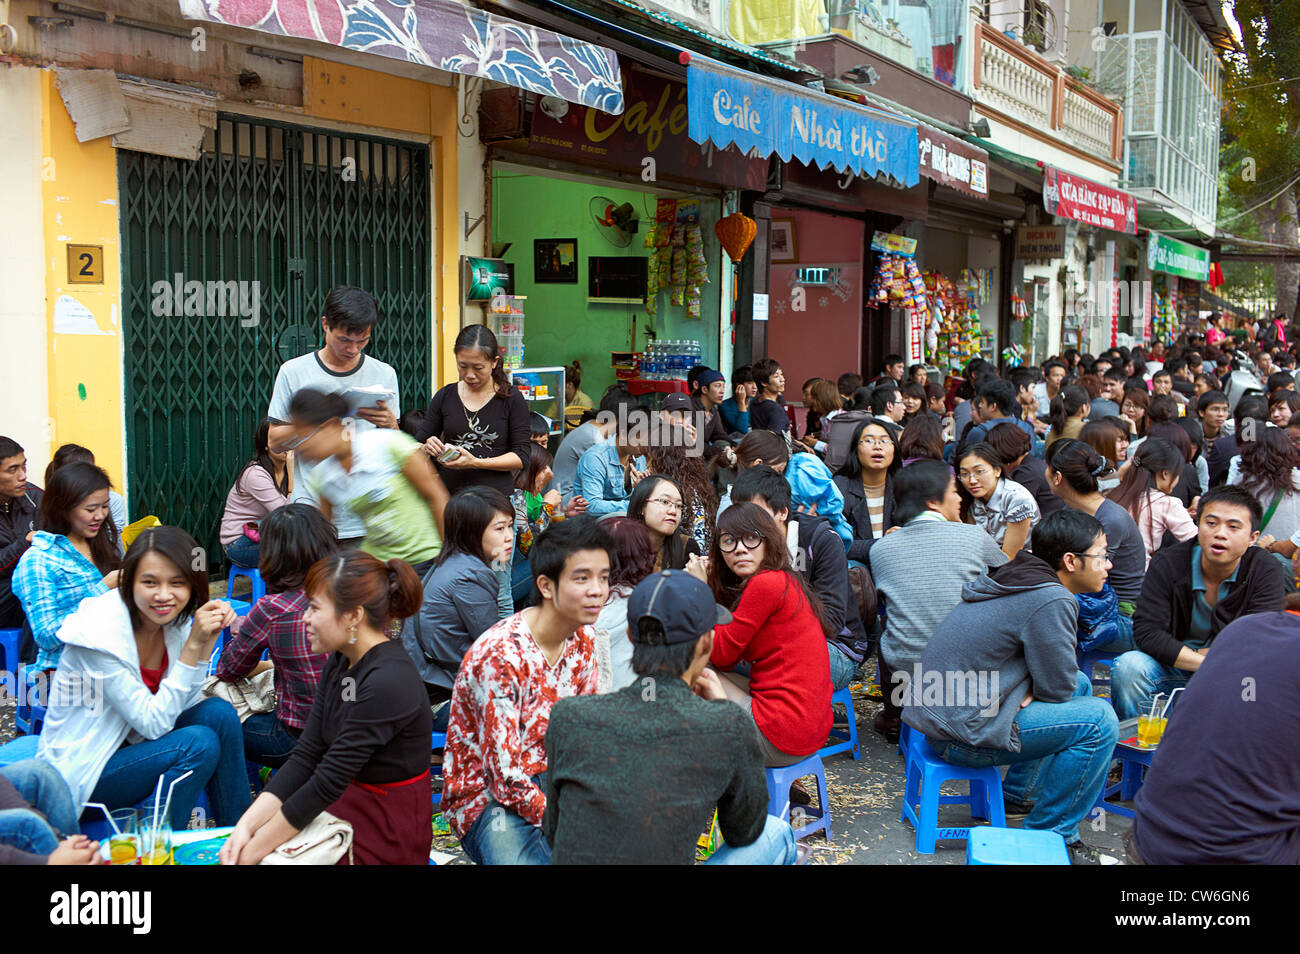 A crowd of people sitting in the streets front of an outdoor cafe with the old St. Joseph's Cathedral in the - Stock Image